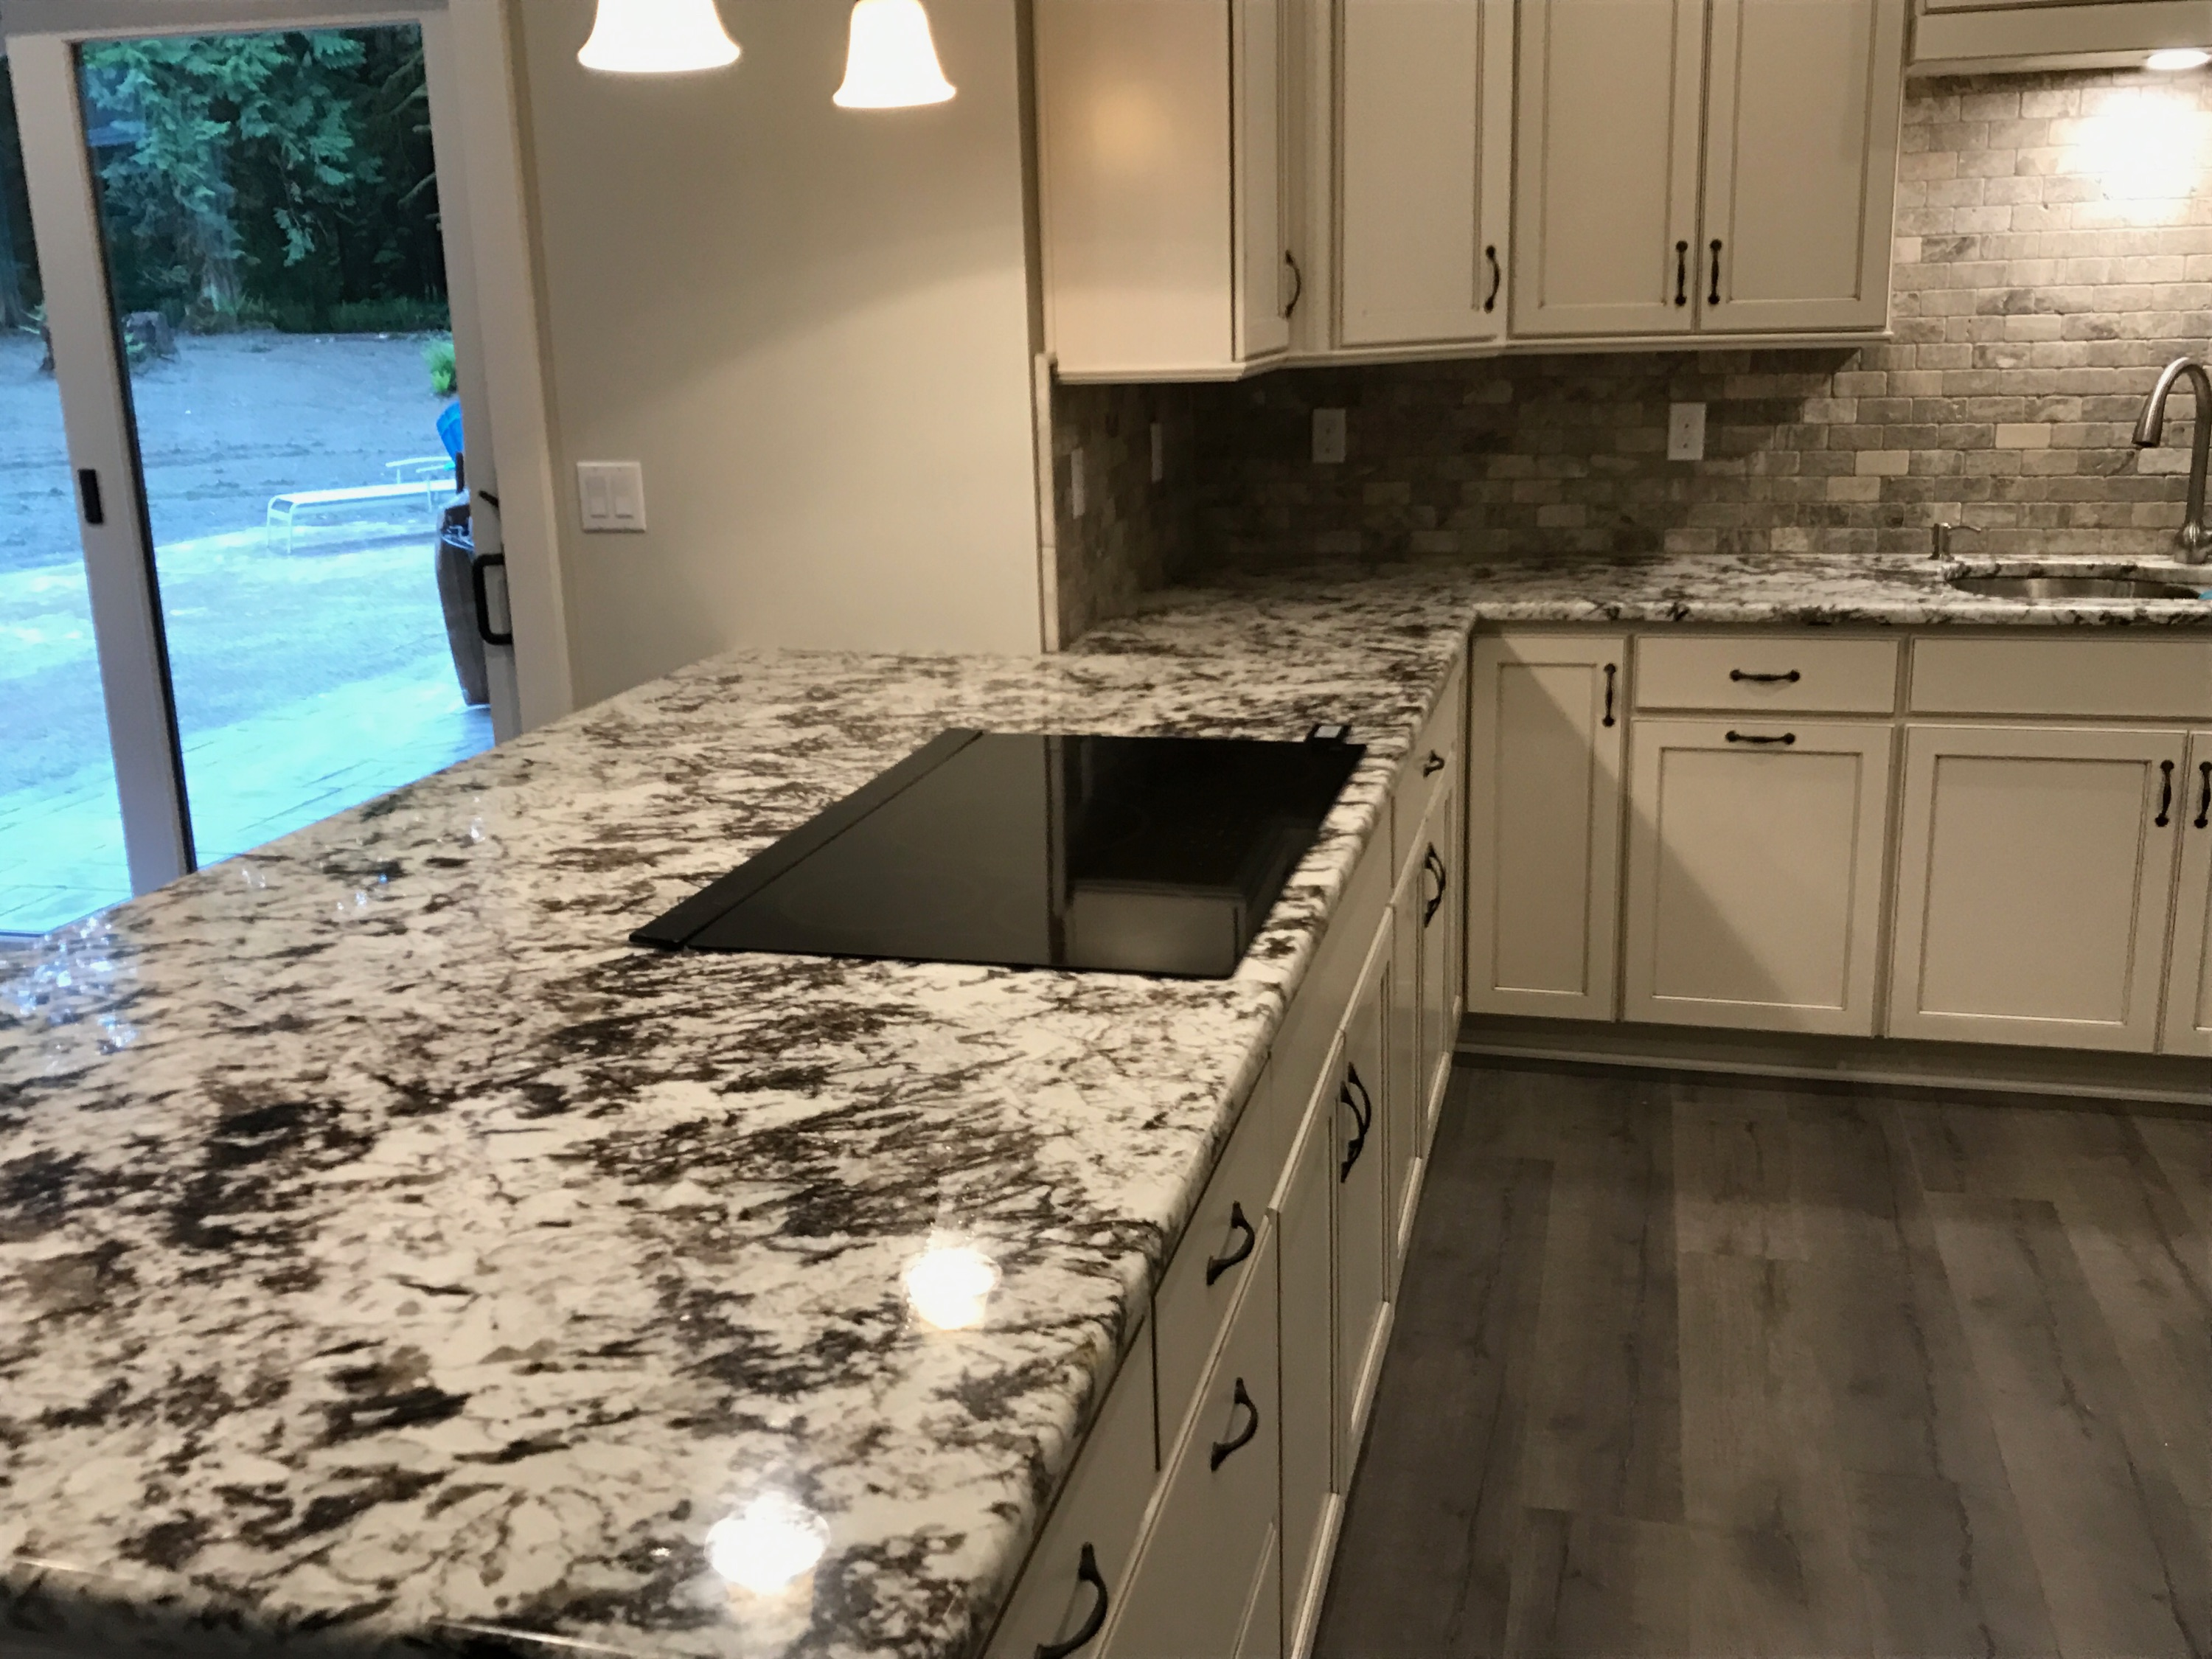 Galeila Kitchen countertops